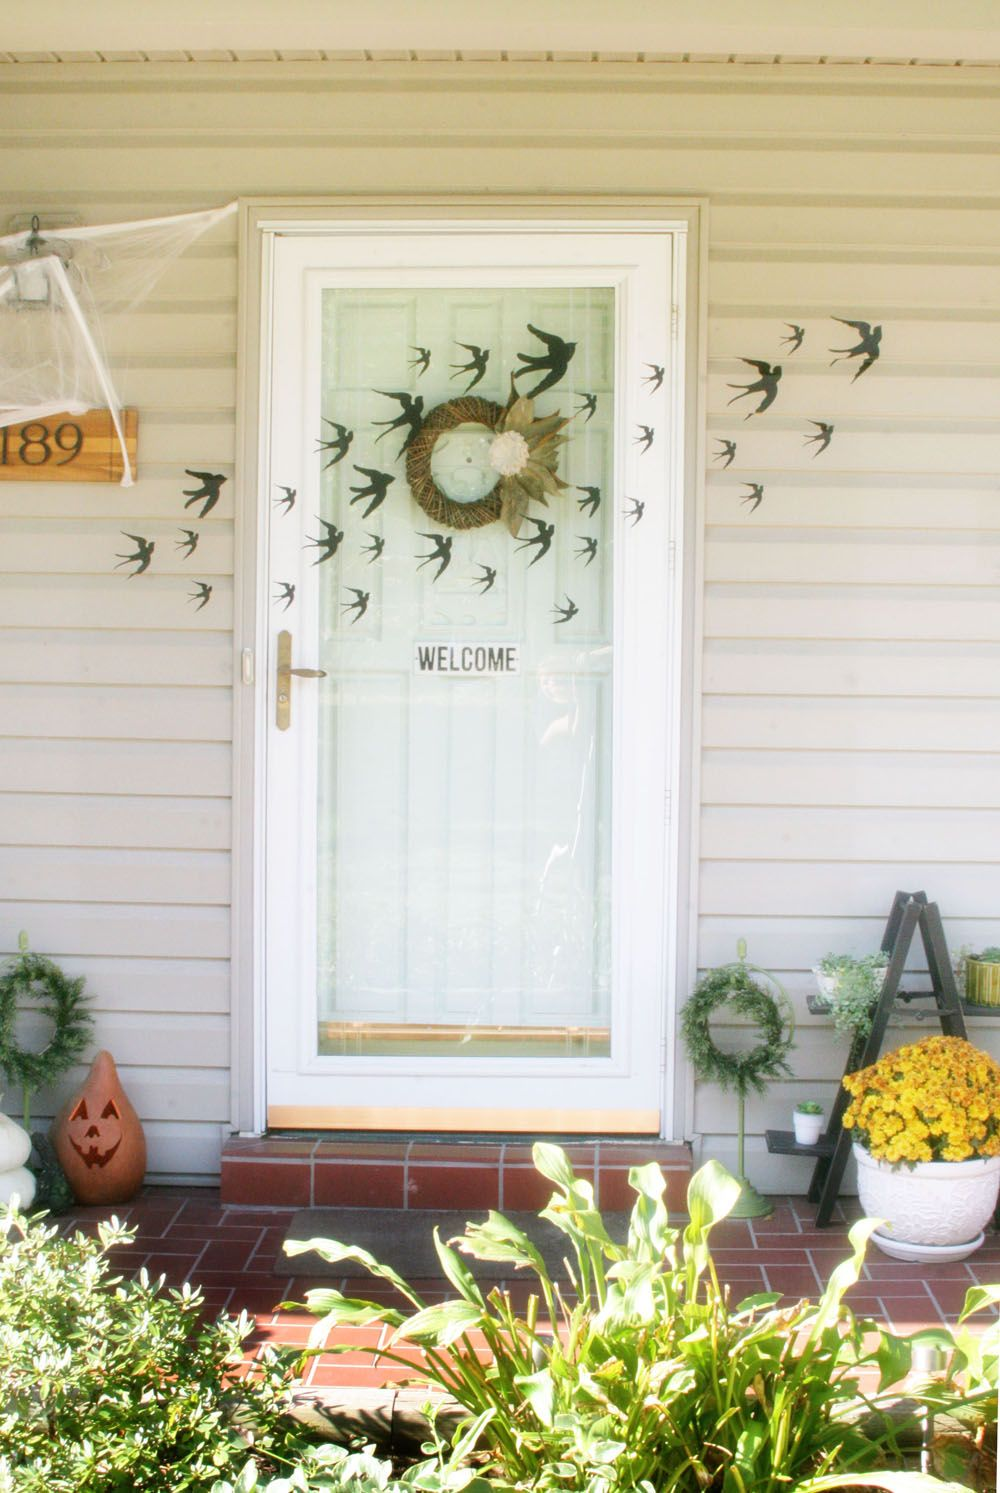 Spooky Halloween Decorations for Kids Spooky halloween decorations - Halloween Door Decorations Ideas